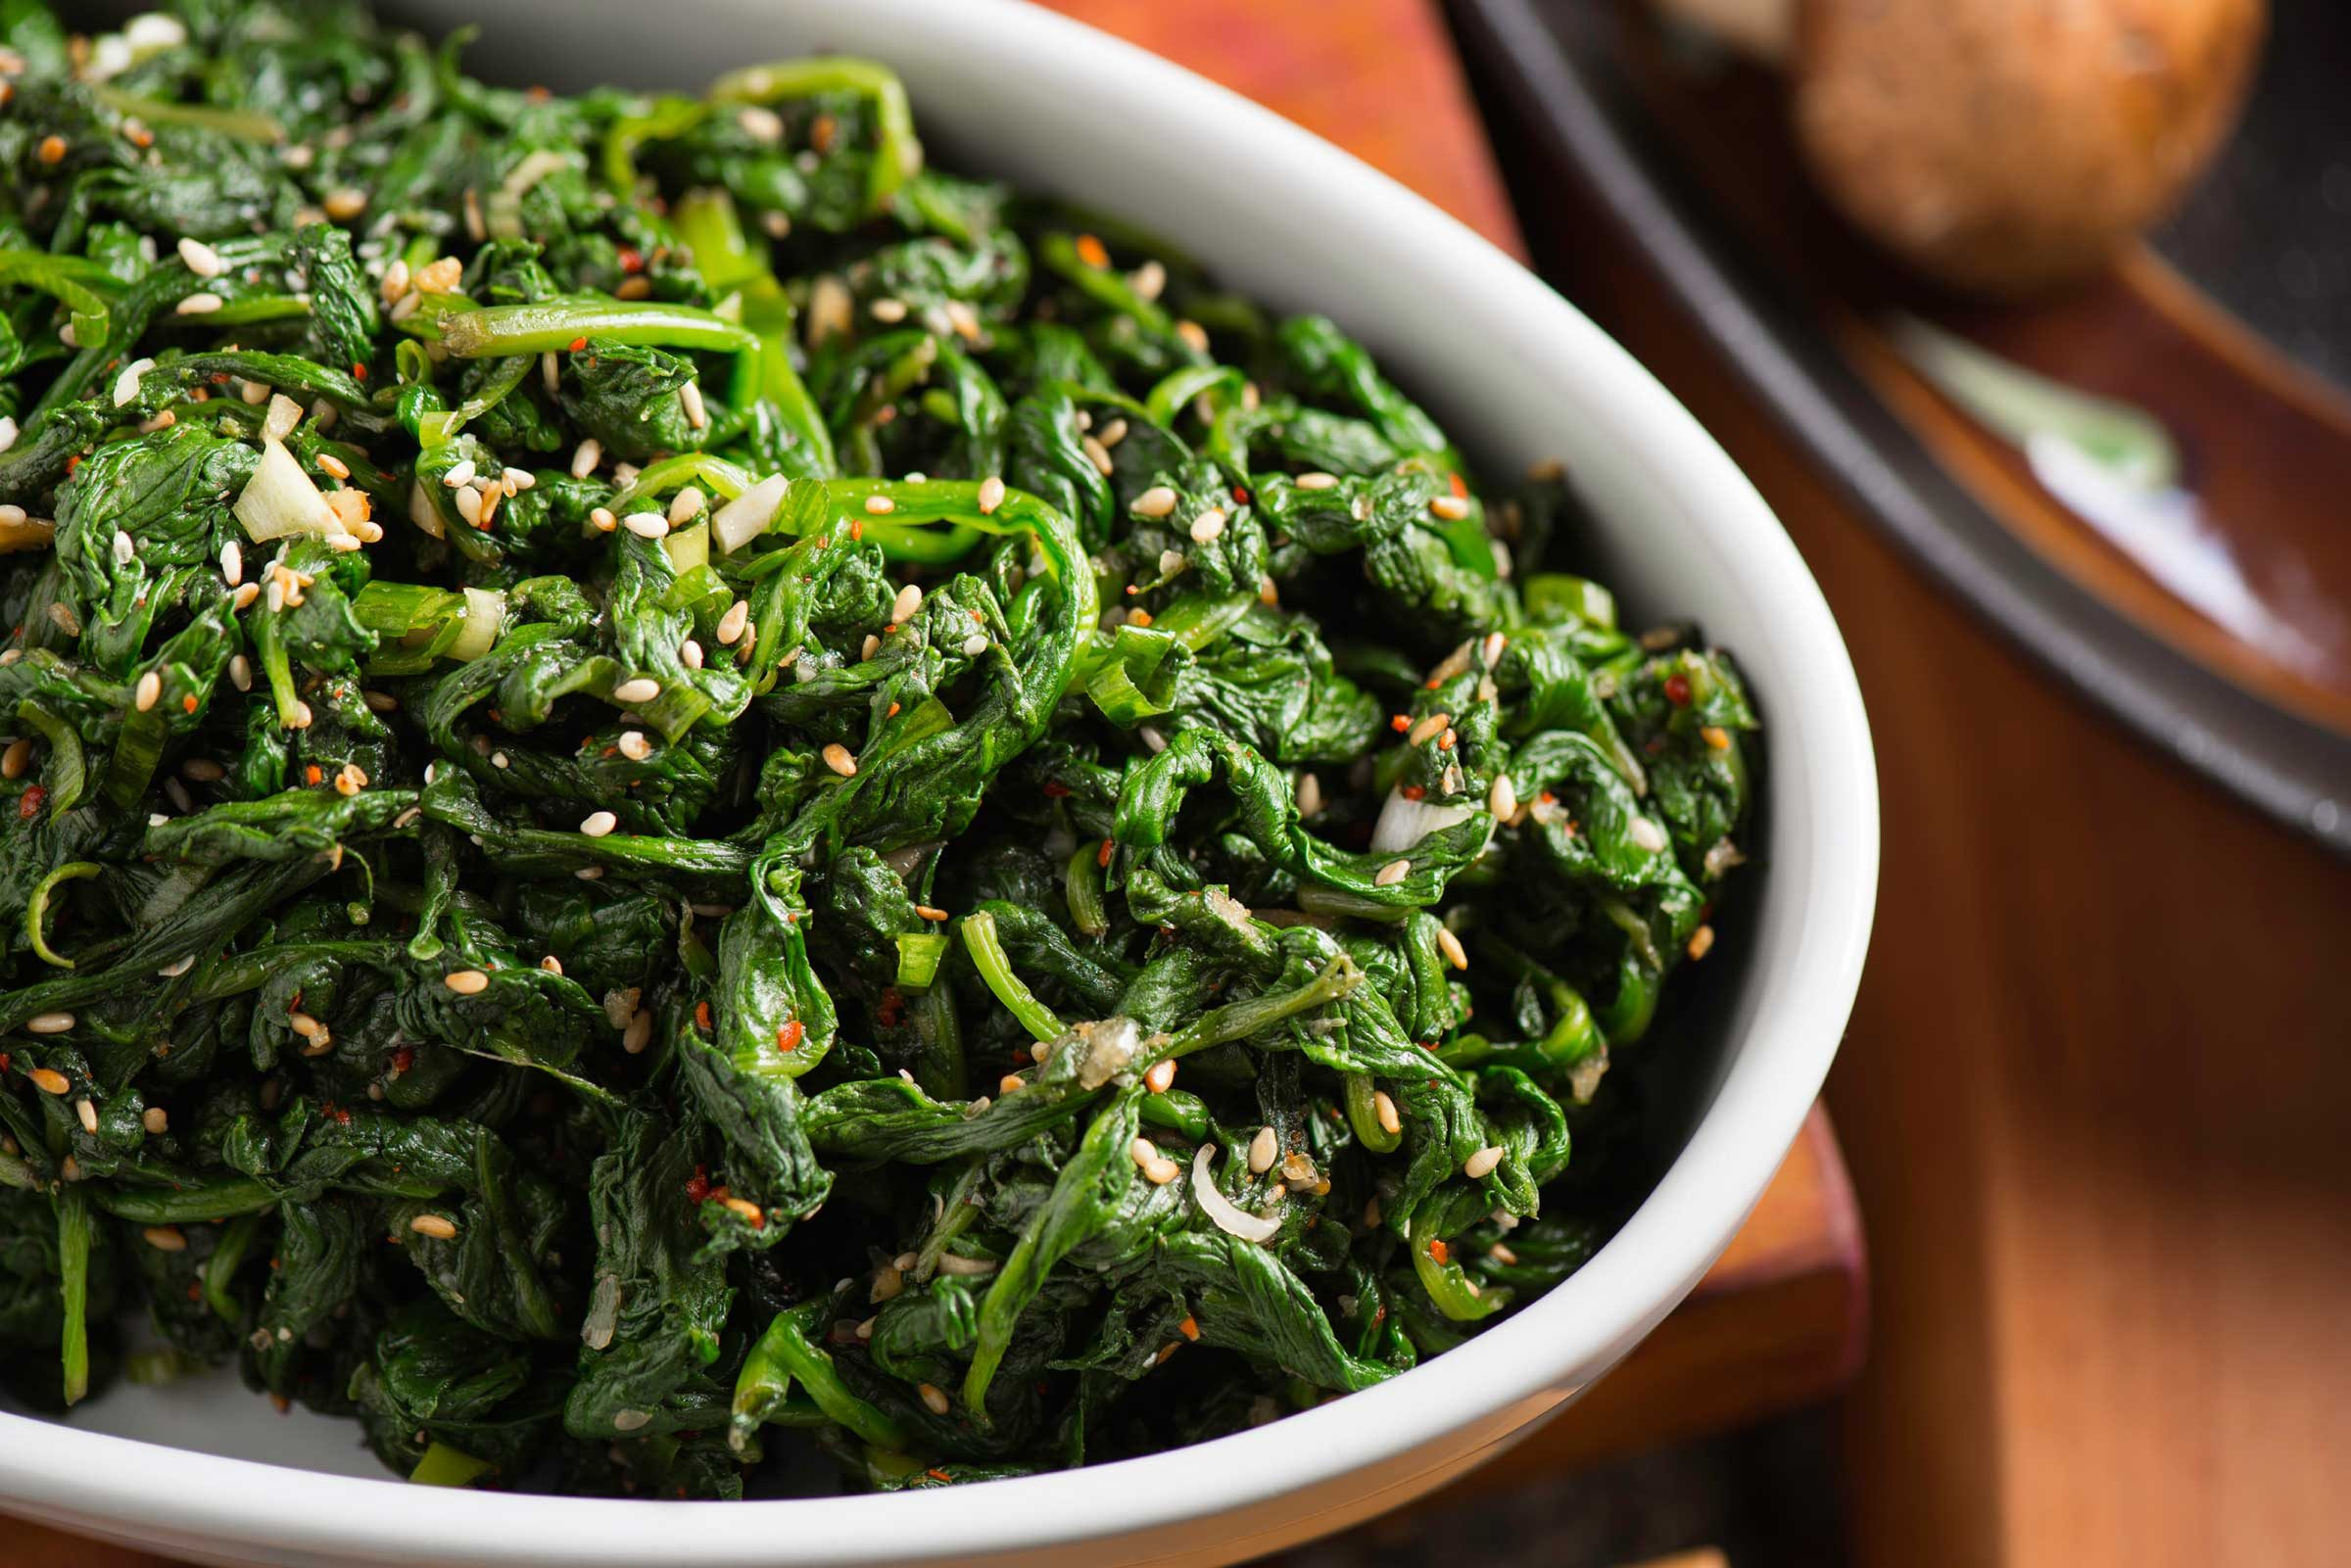 Cooked spinach: 41 calories per 1 cup